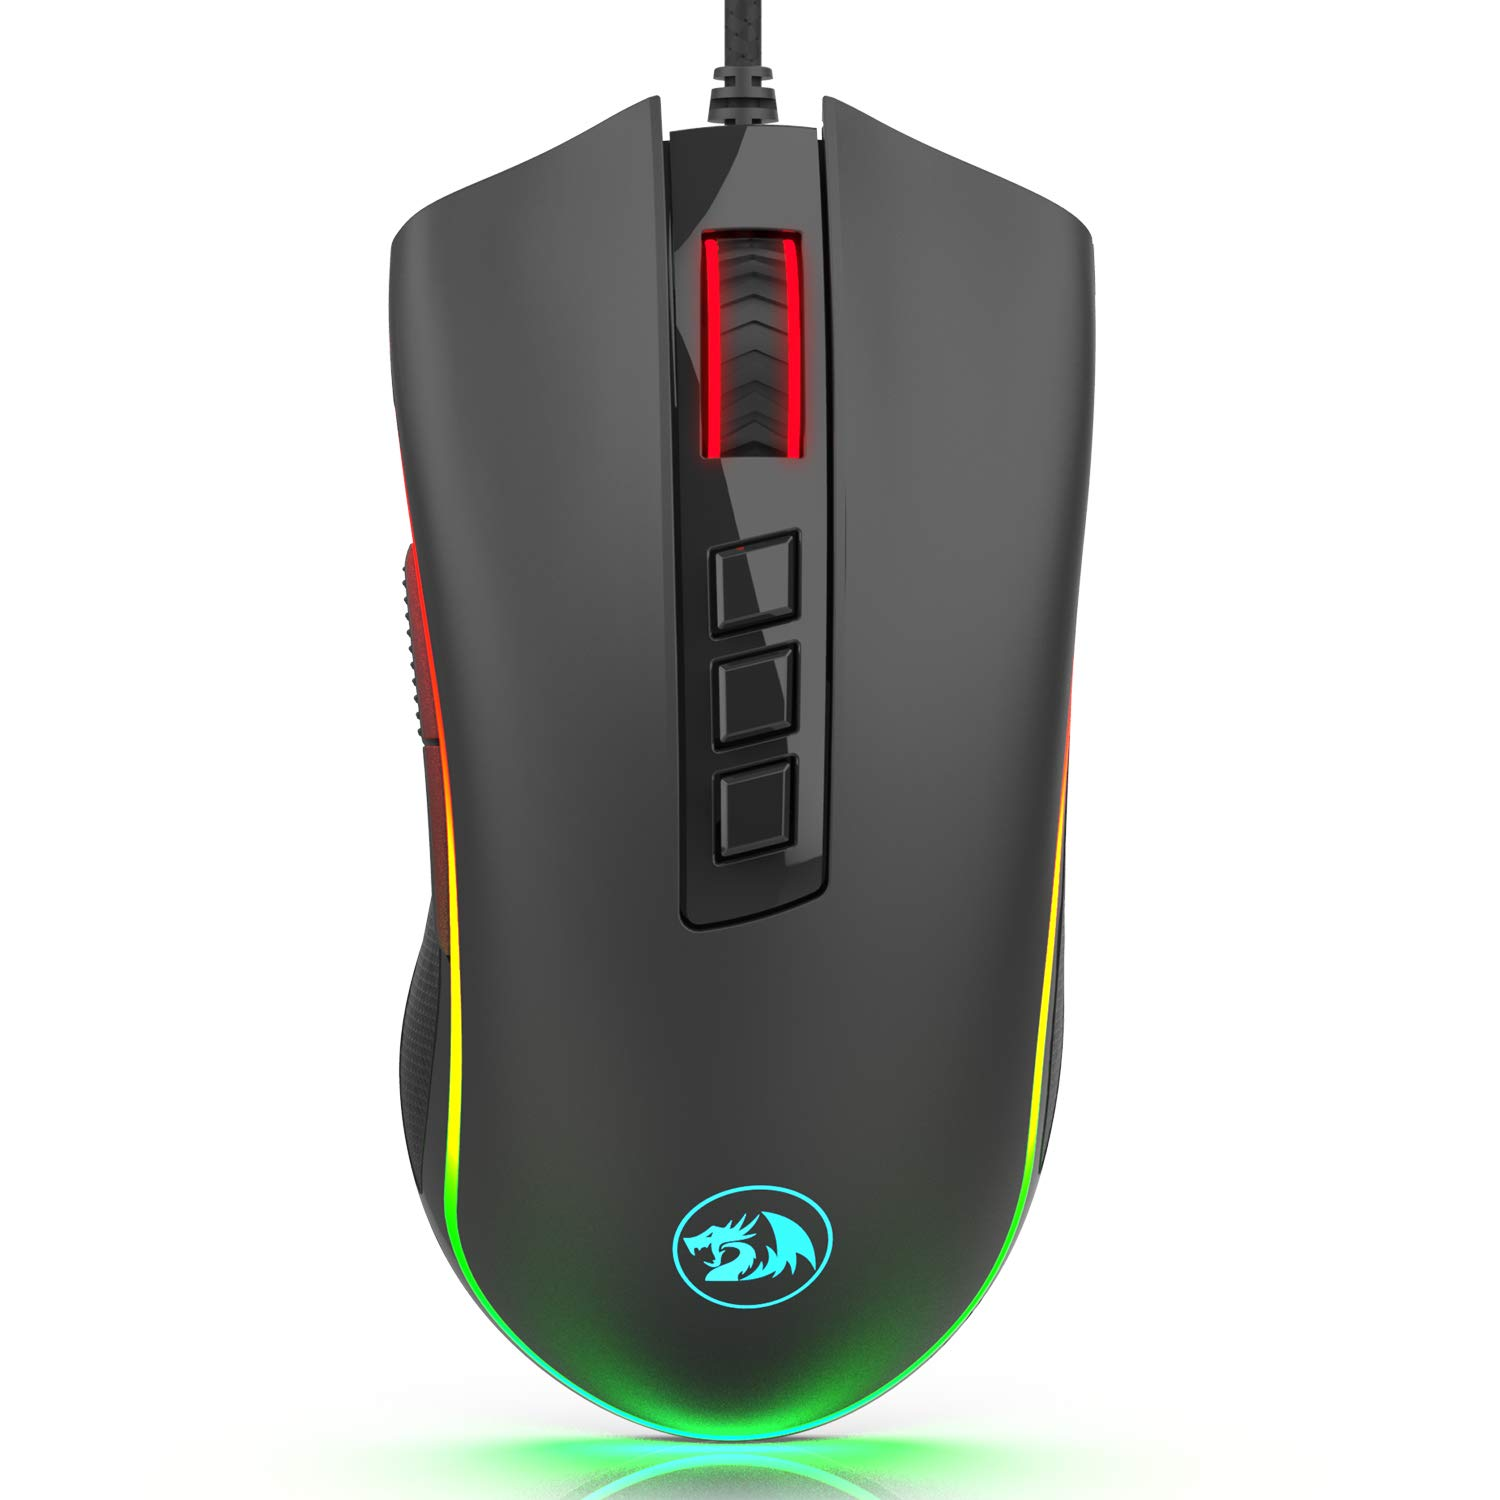 Redragon M711-FPS Cobra FPS Optical Switch LK Gaming Mouse with 16.8 Million RGB Color Backlit, 24,000 DPI, 7 Programmable Buttons